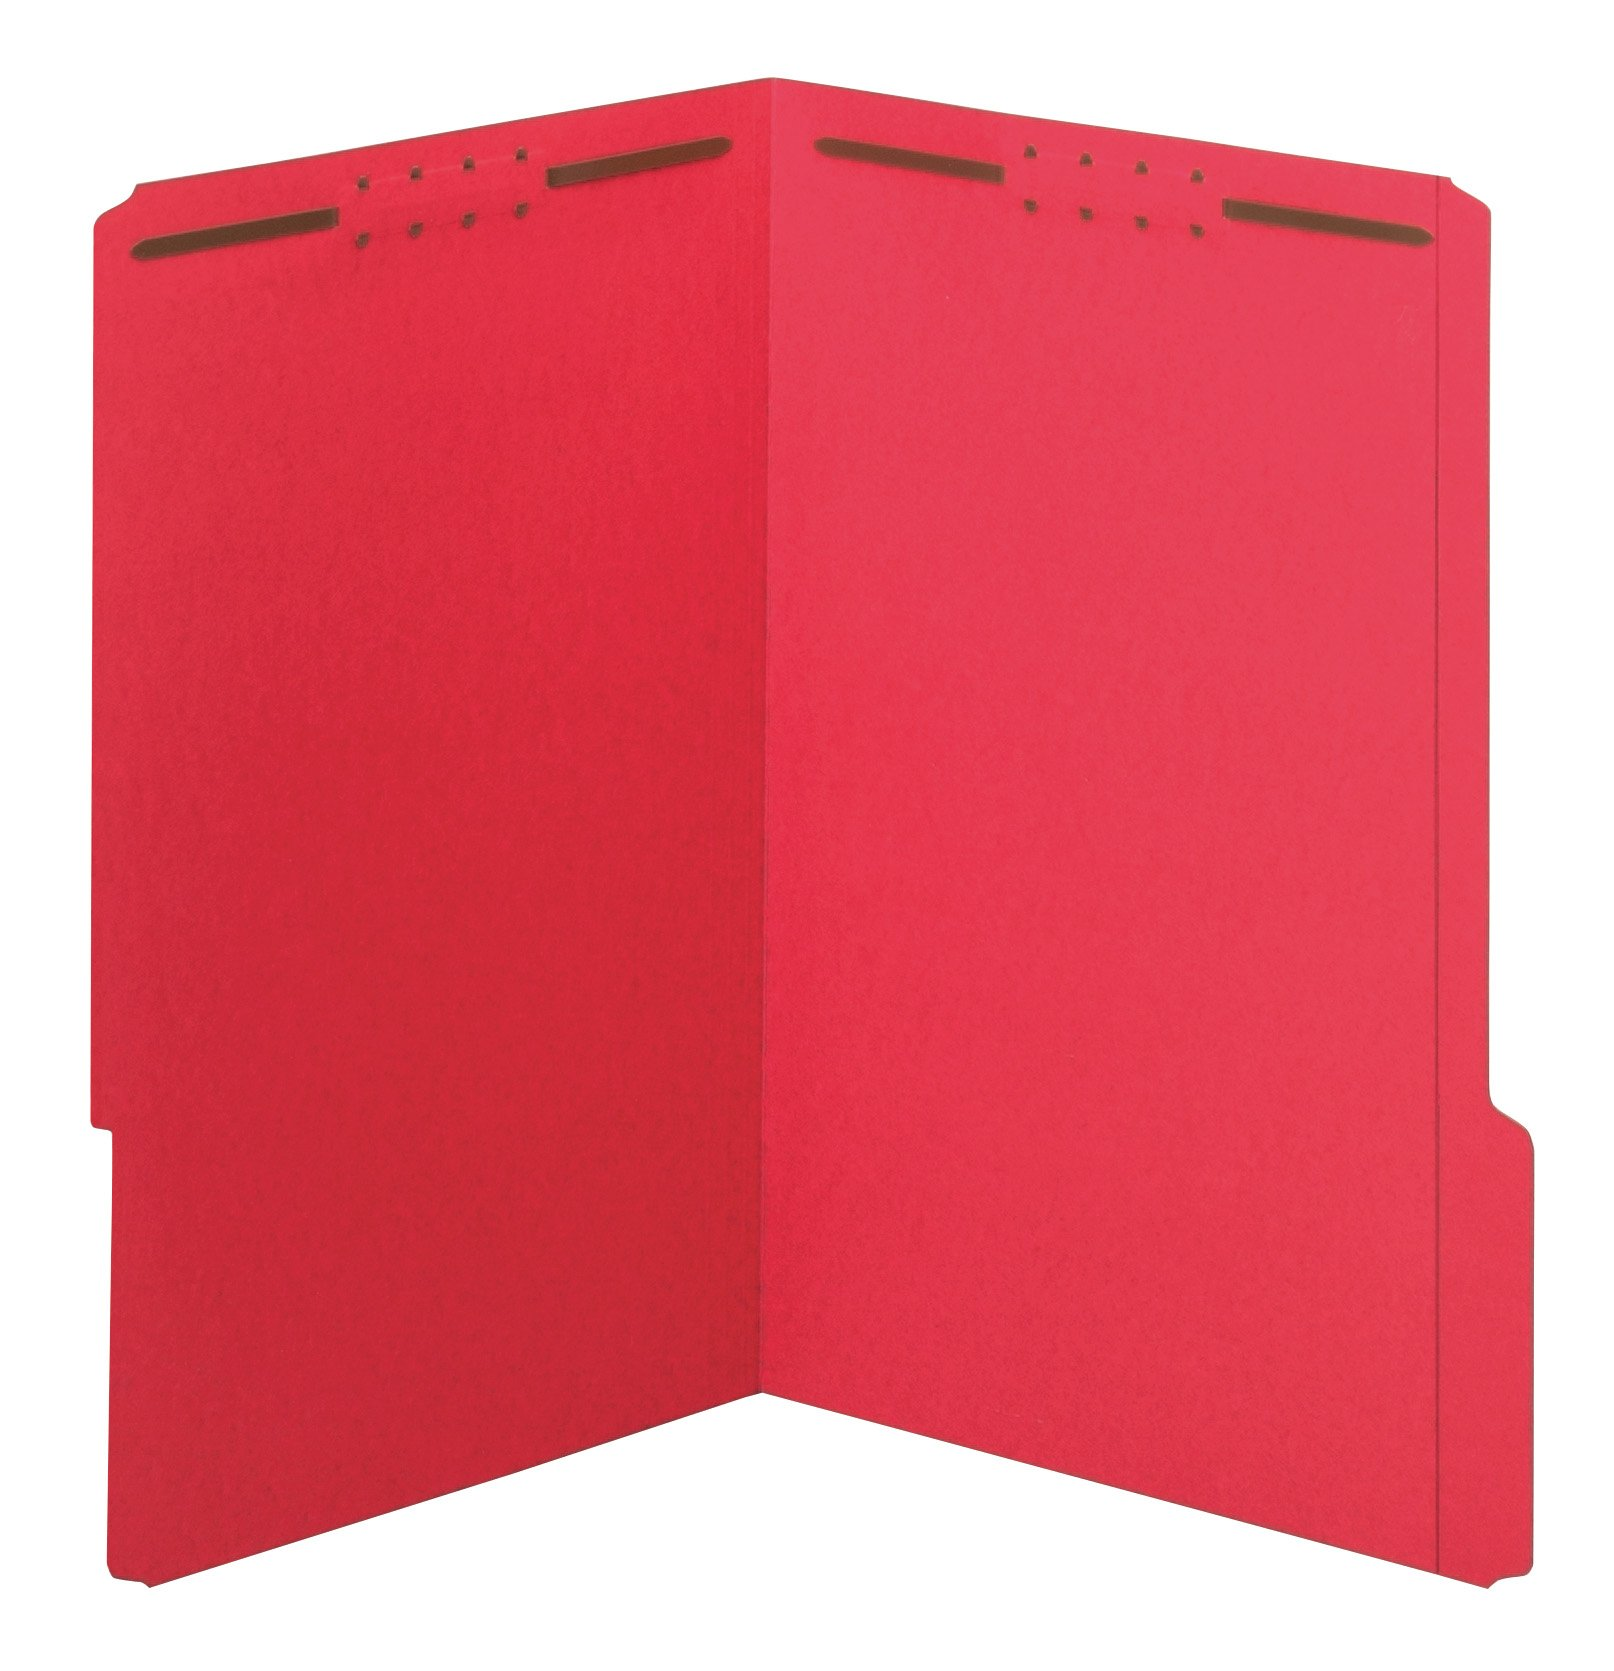 Globe-Weis/Pendaflex Fastener Folders, 1/3 Cut, Reinforced Tab, 2 Fasteners, Legal Size, Red, 50 Folders Per Box (27740)